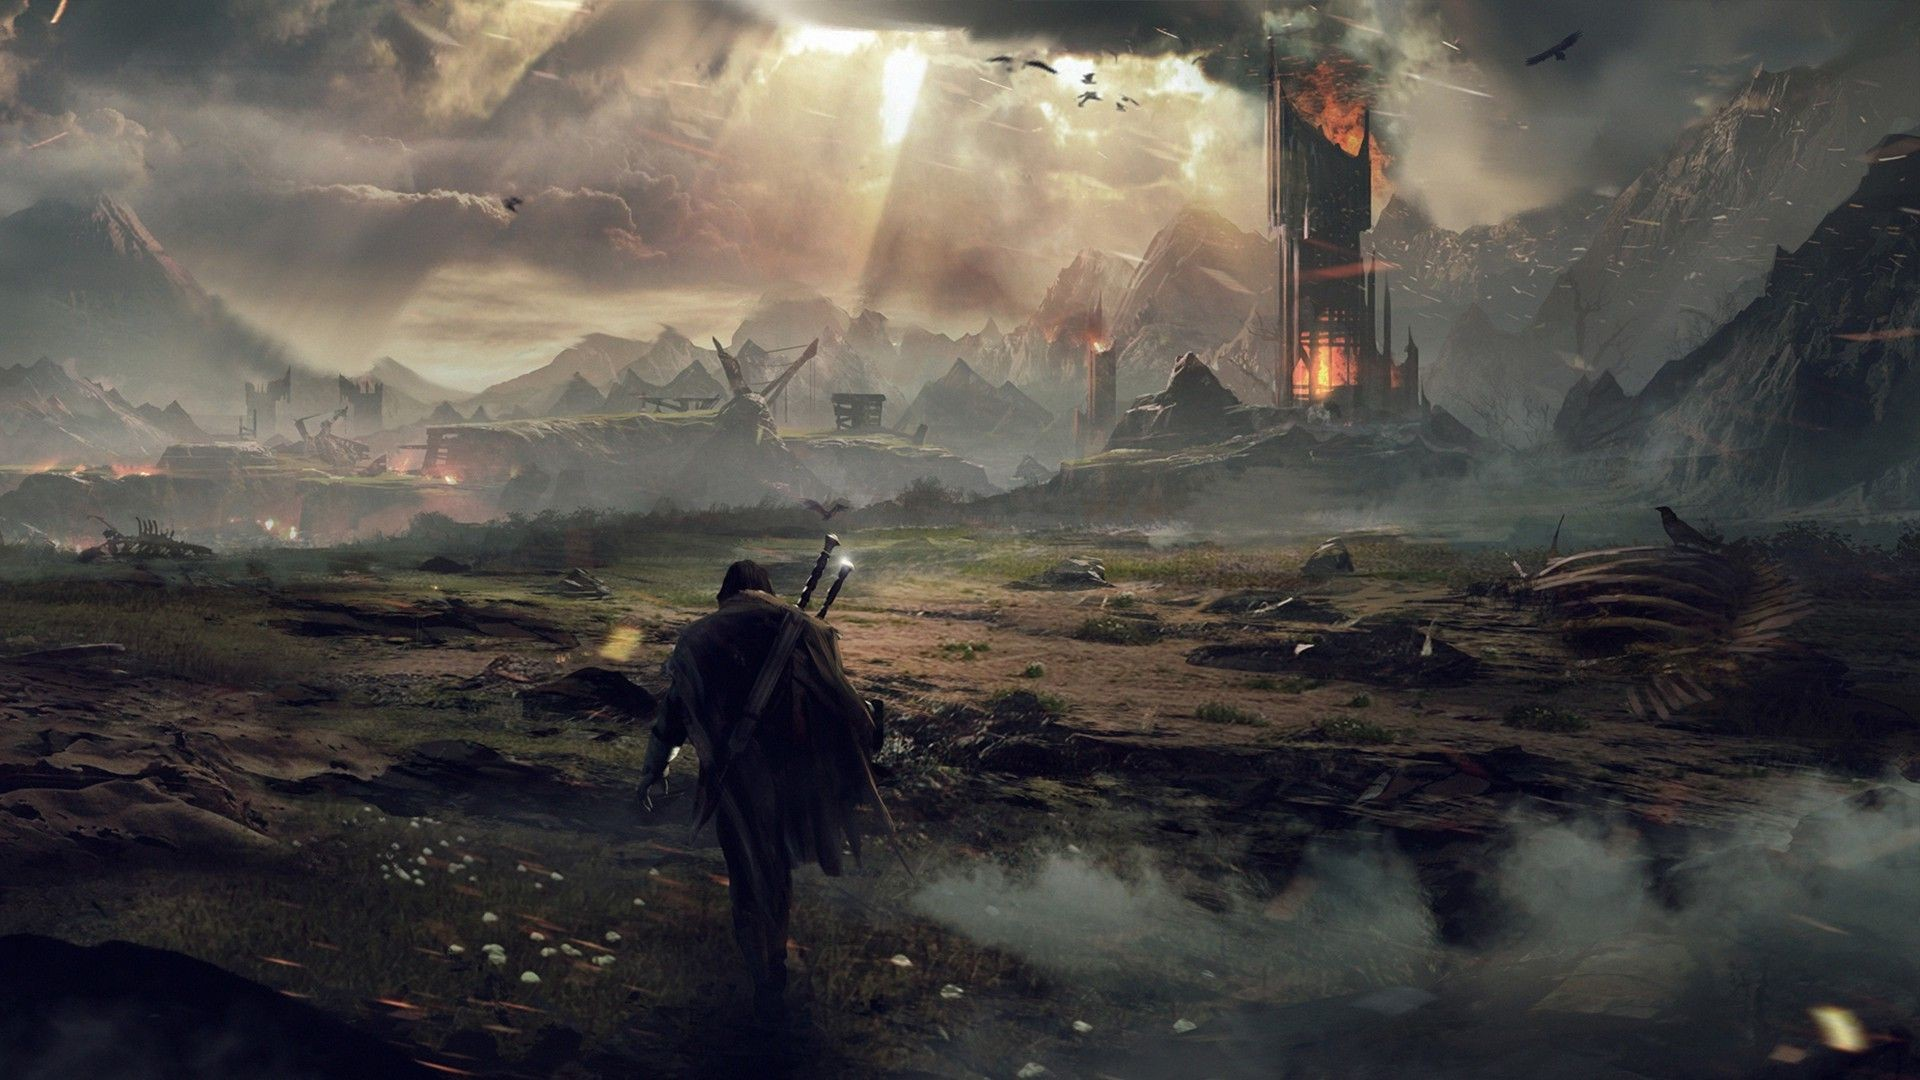 General 1920x1080 video games The Lord of the Rings Mordor Middle-earth: Shadow of Mordor Middle-earth looking into the distance